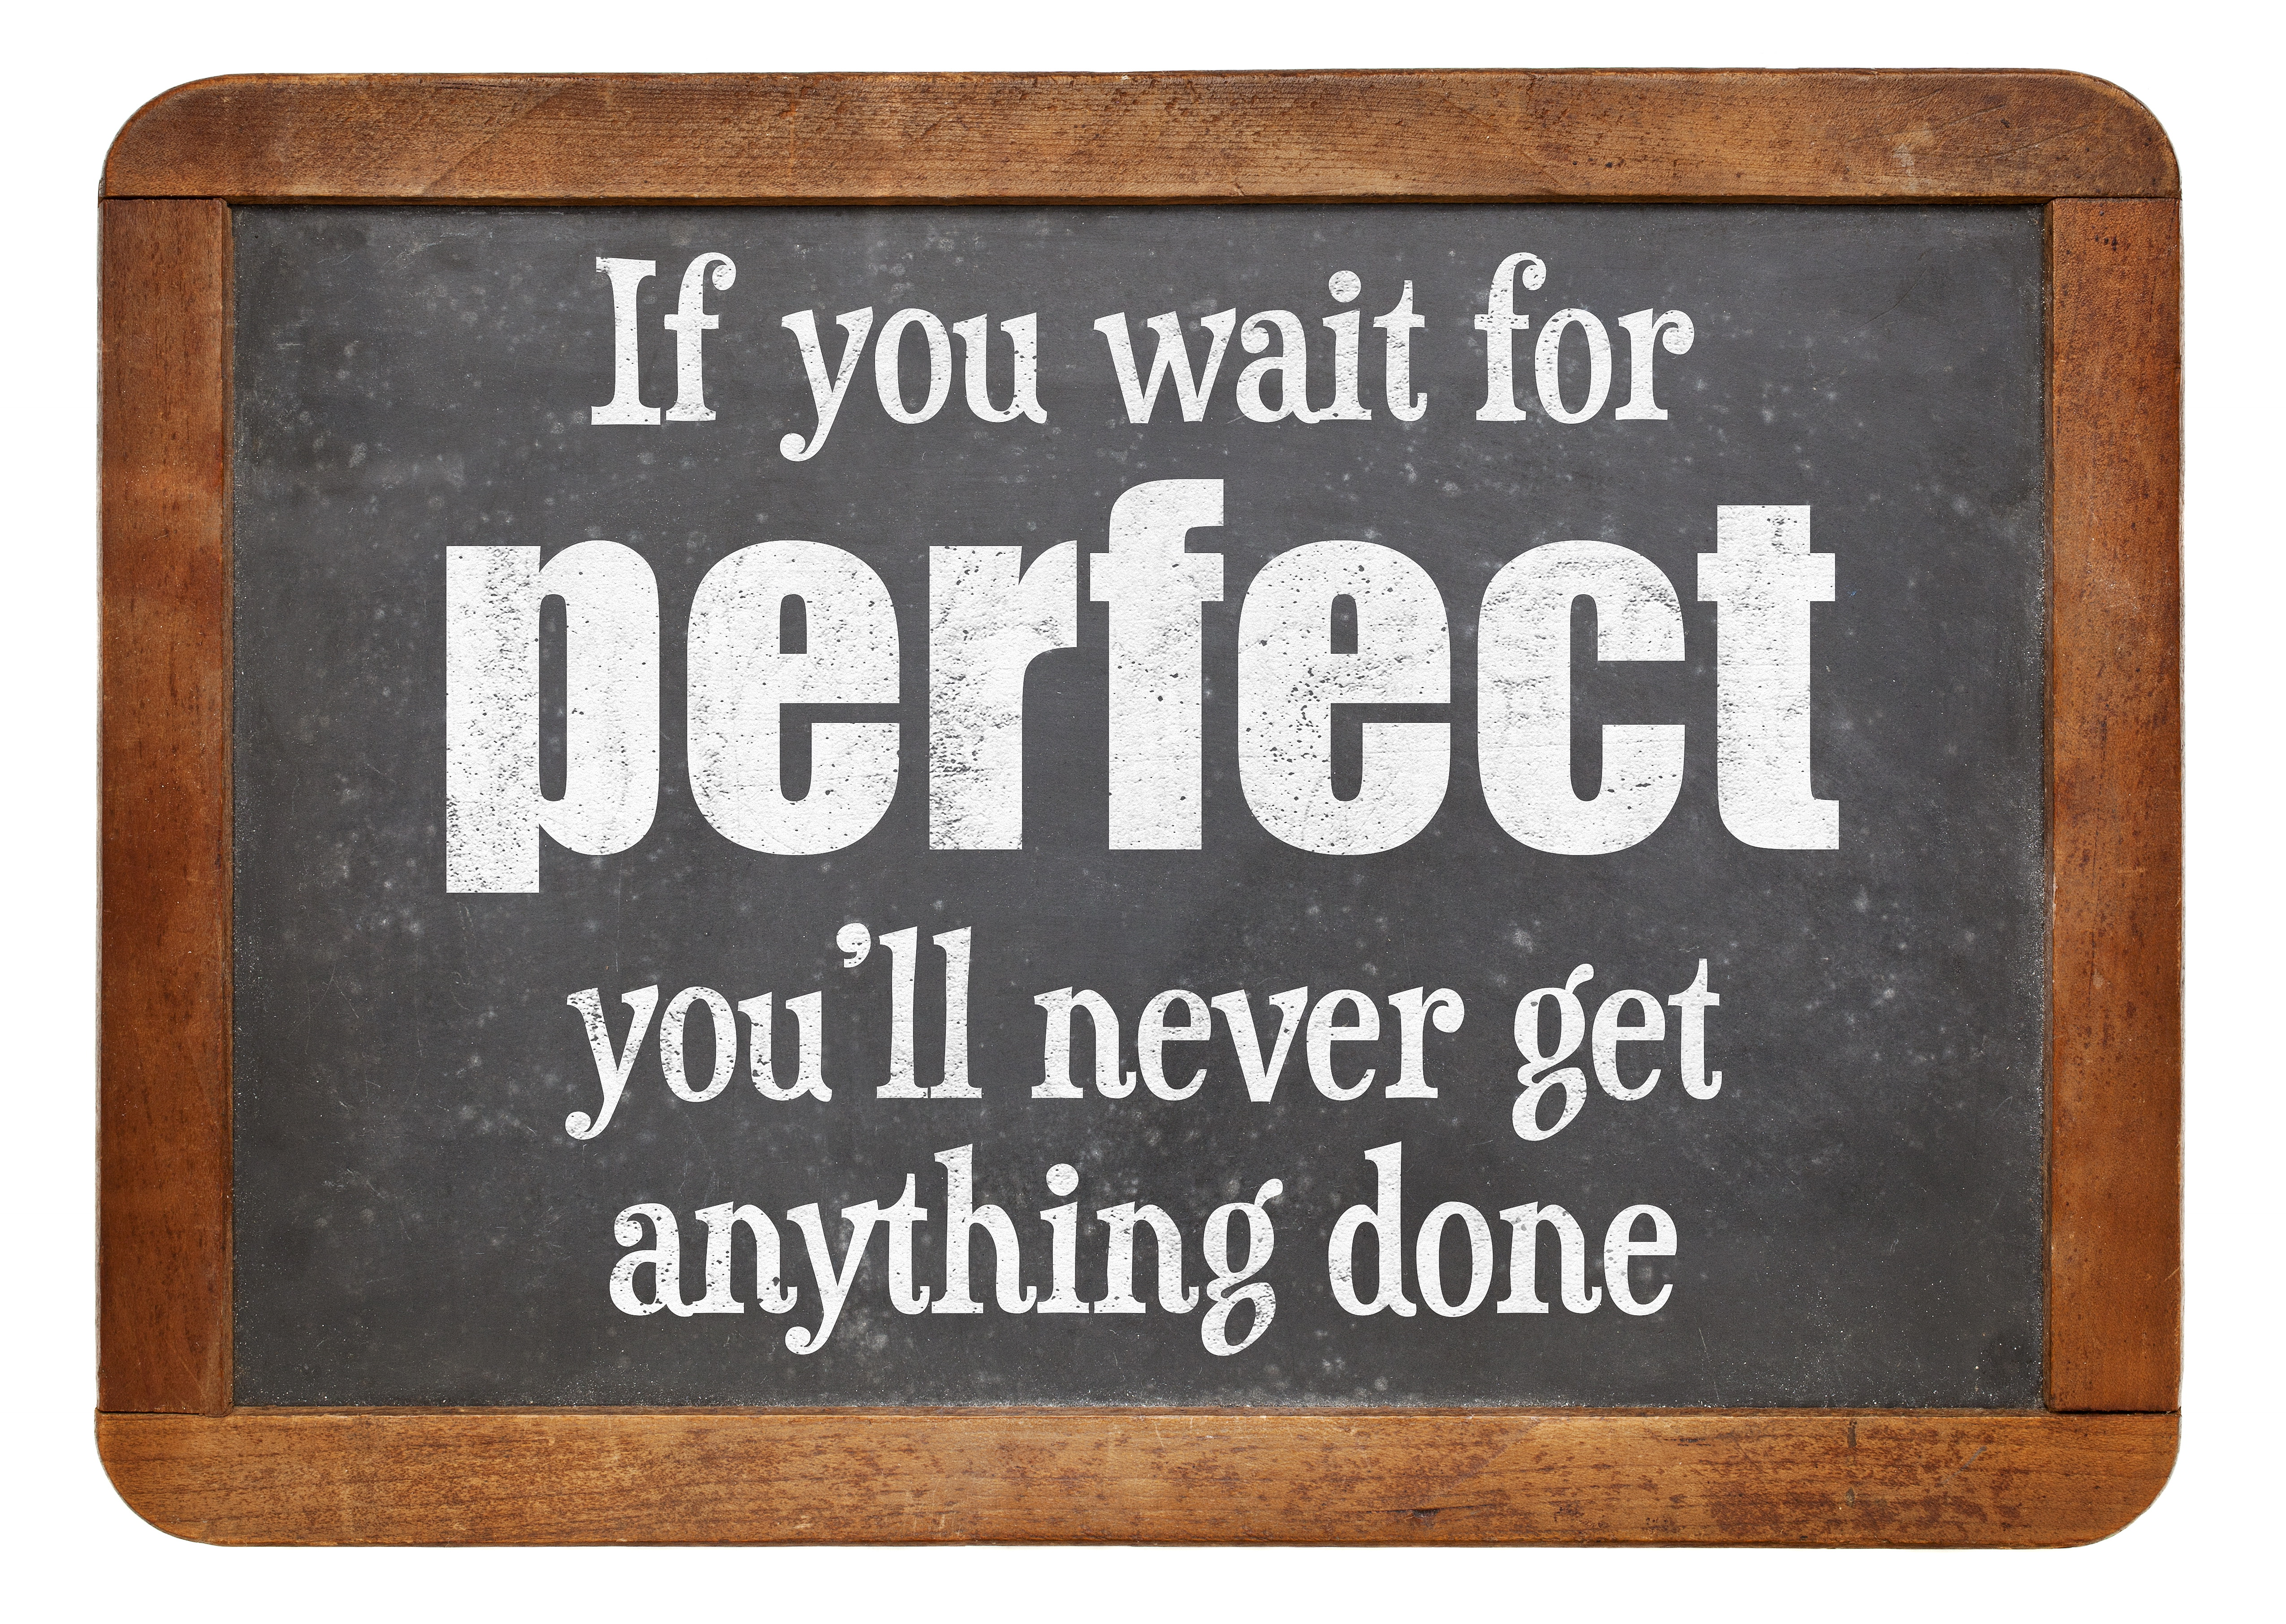 Done is better than perfect!